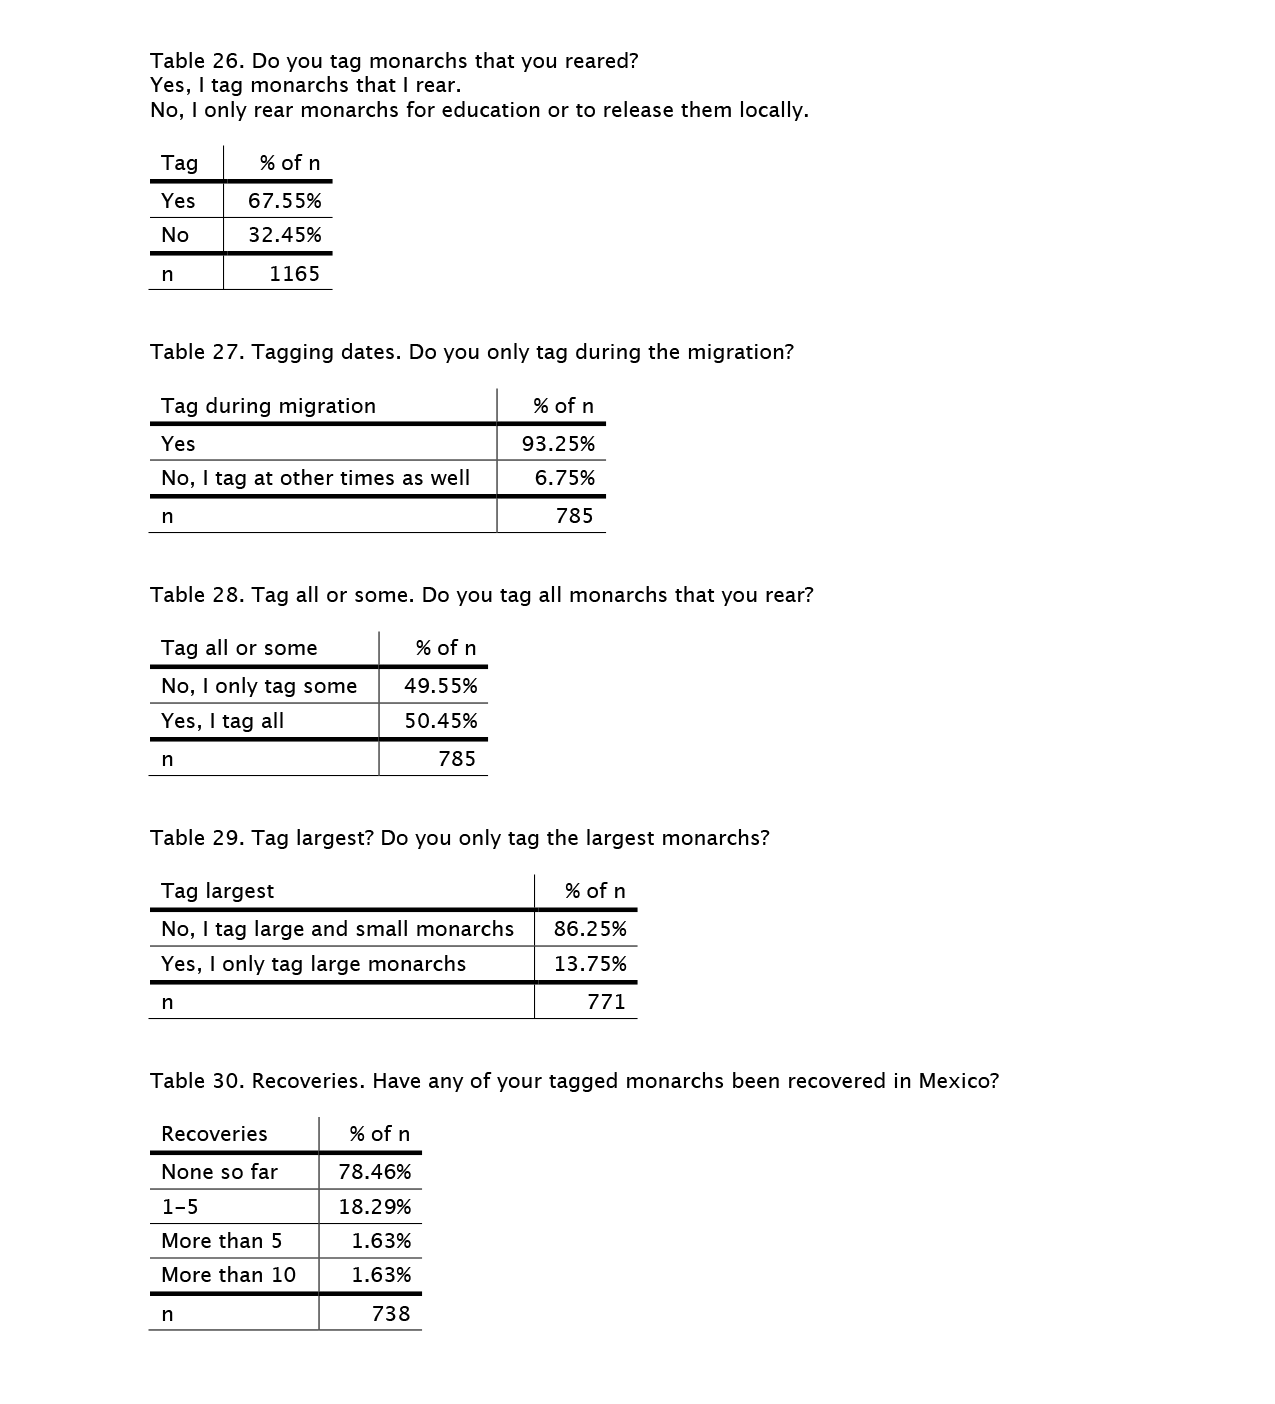 rearing-survey-tables-26-30